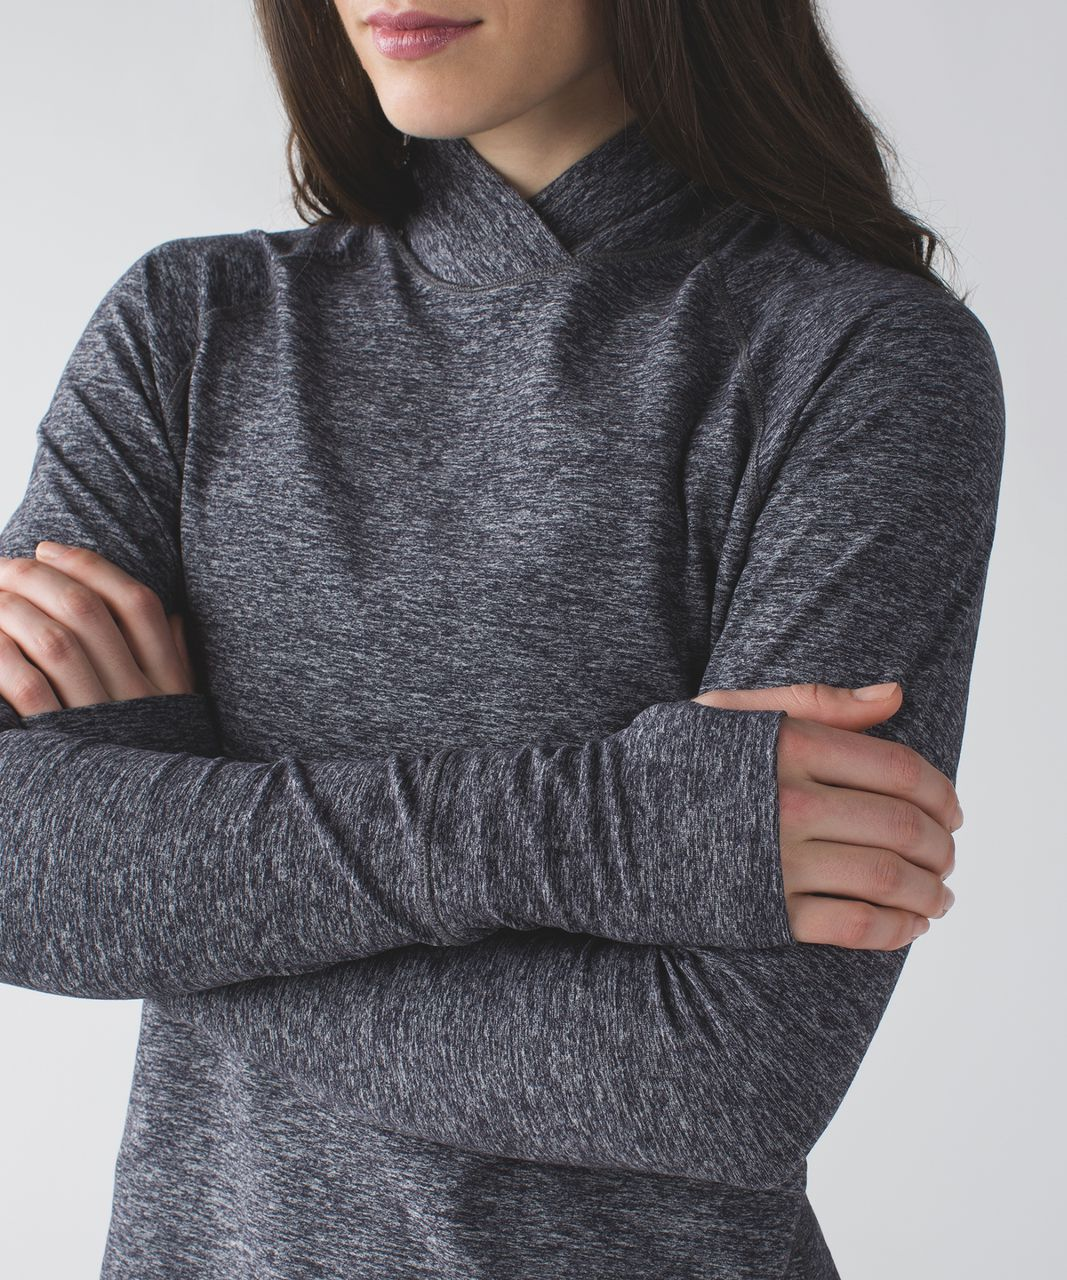 Lululemon Warm Your Core Long Sleeve Tee - Heathered Black